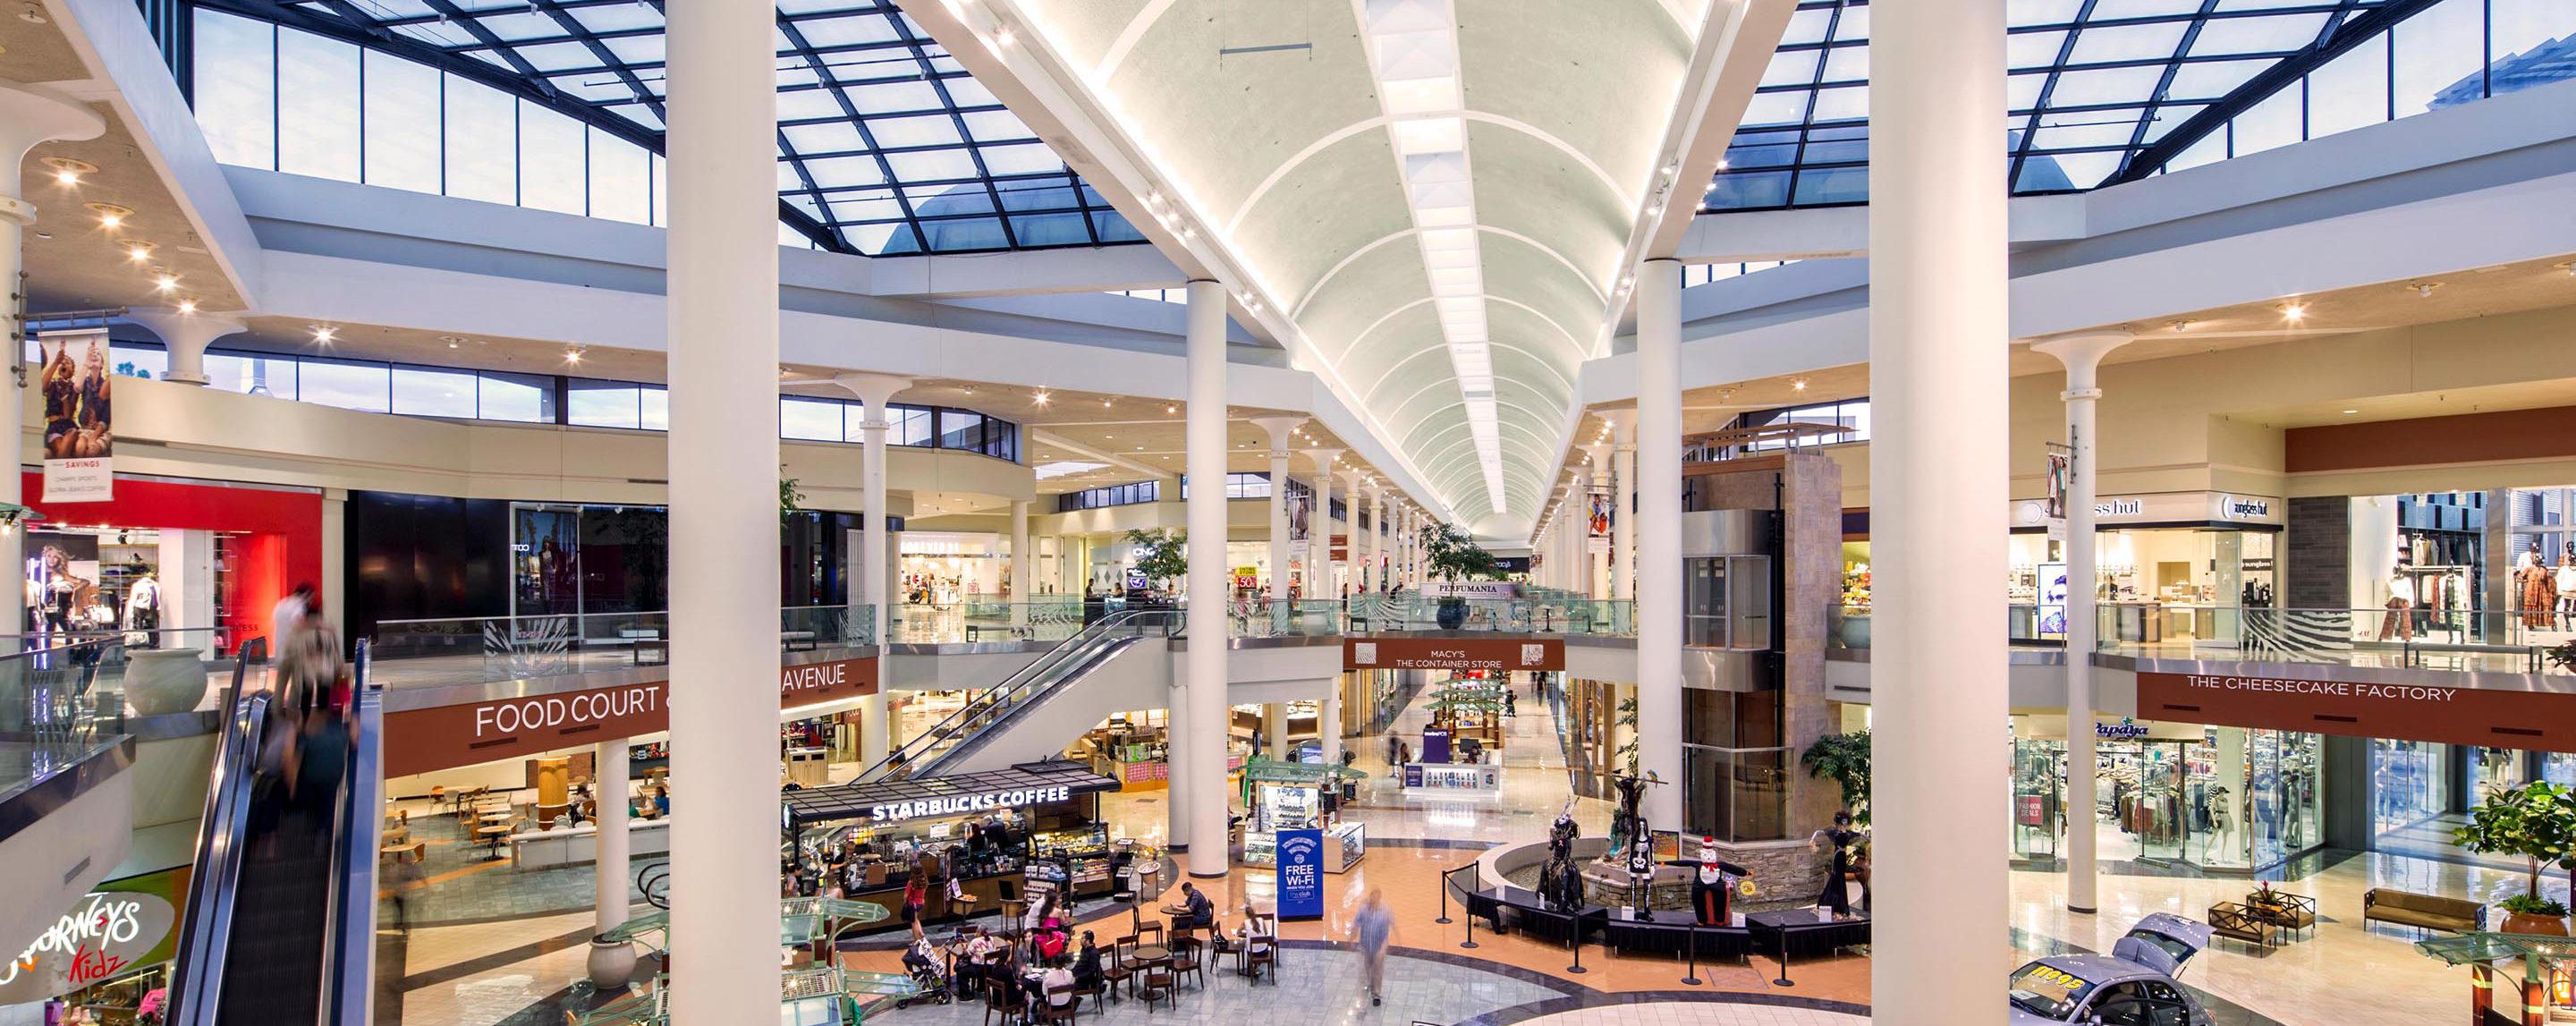 Journeys, Starbucks, and the food court are in this plaza of the mall, which leads to Macy's and The Cheesecake Factory.